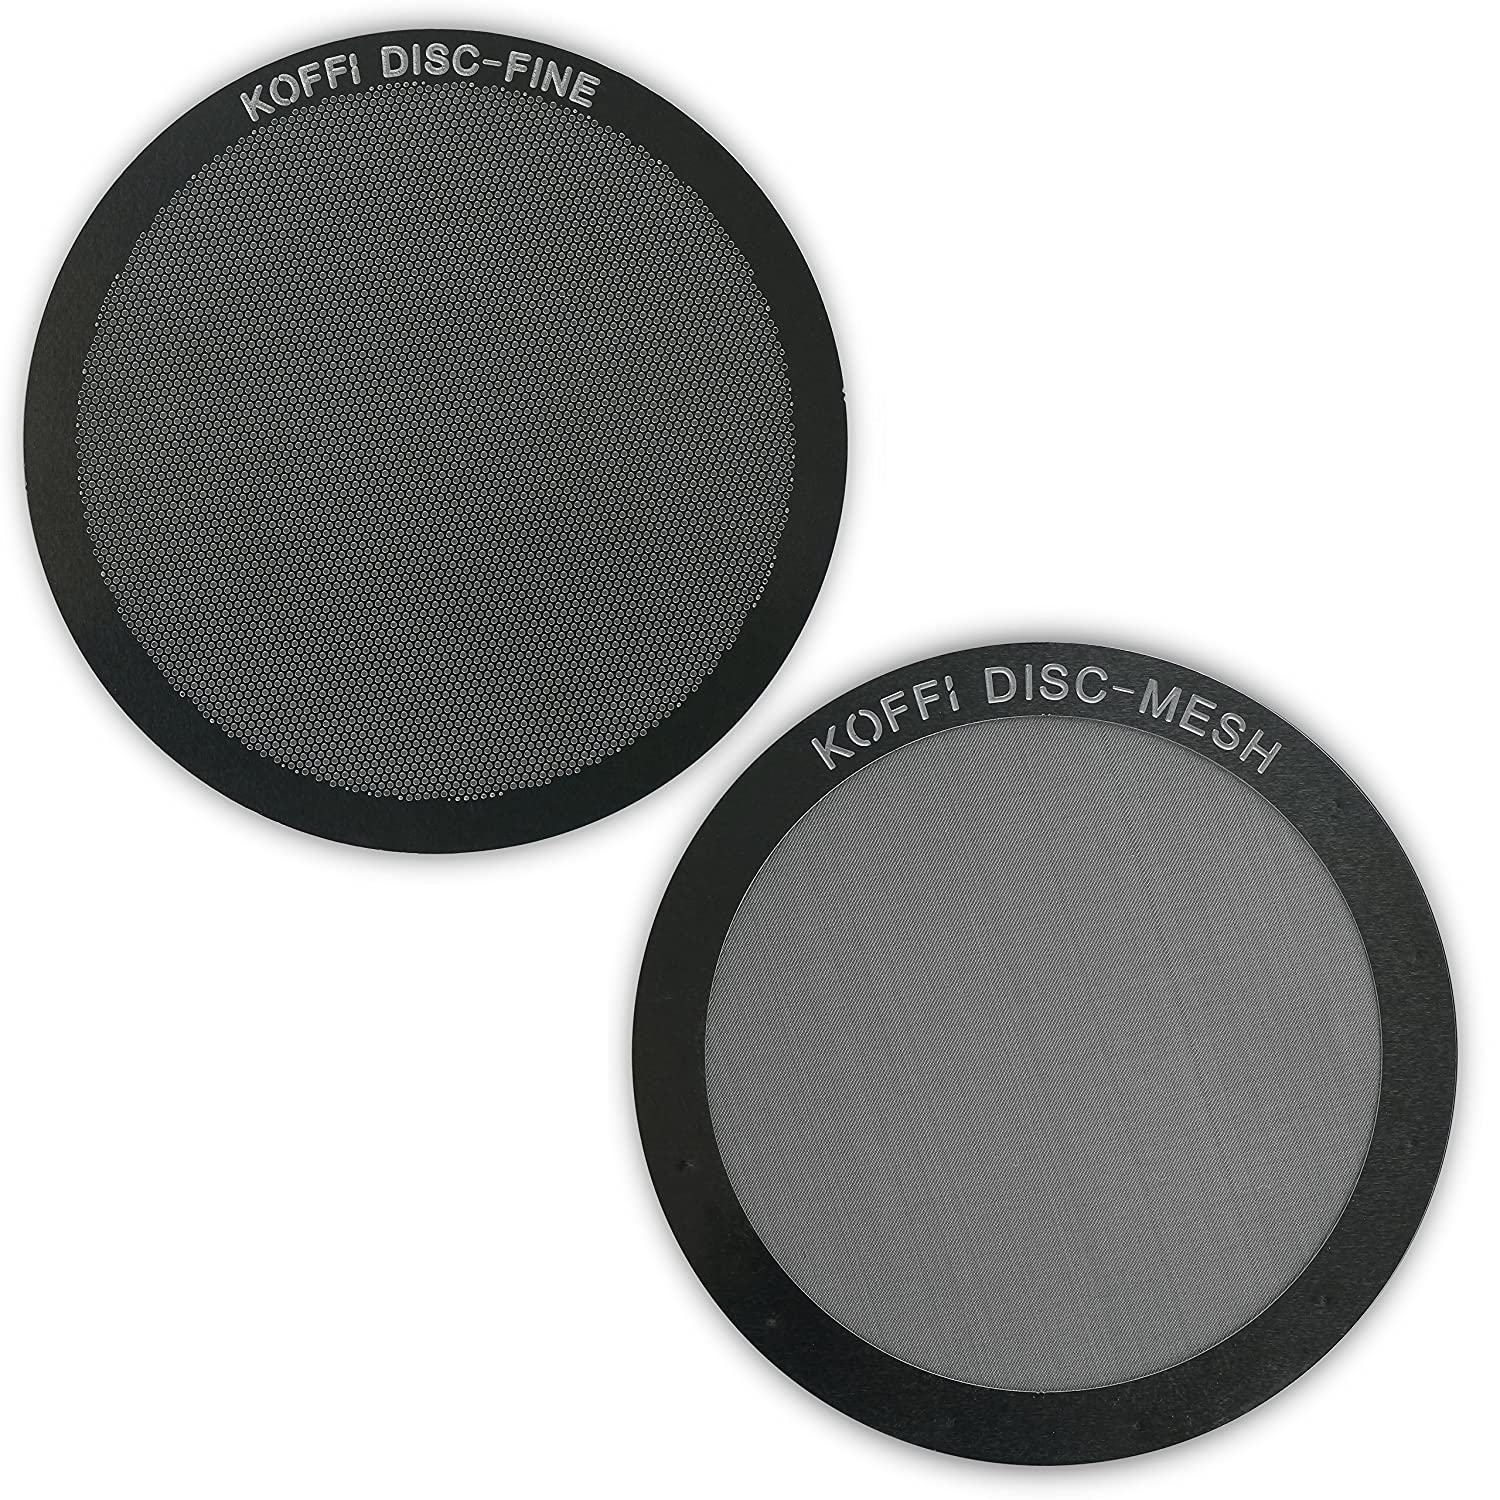 KOFFI ® DISC FINE & MESH - AeroPress Filter Twin Pack - Reusable Stainless Steel Metal Filters - Unlock Your Coffee's Potential